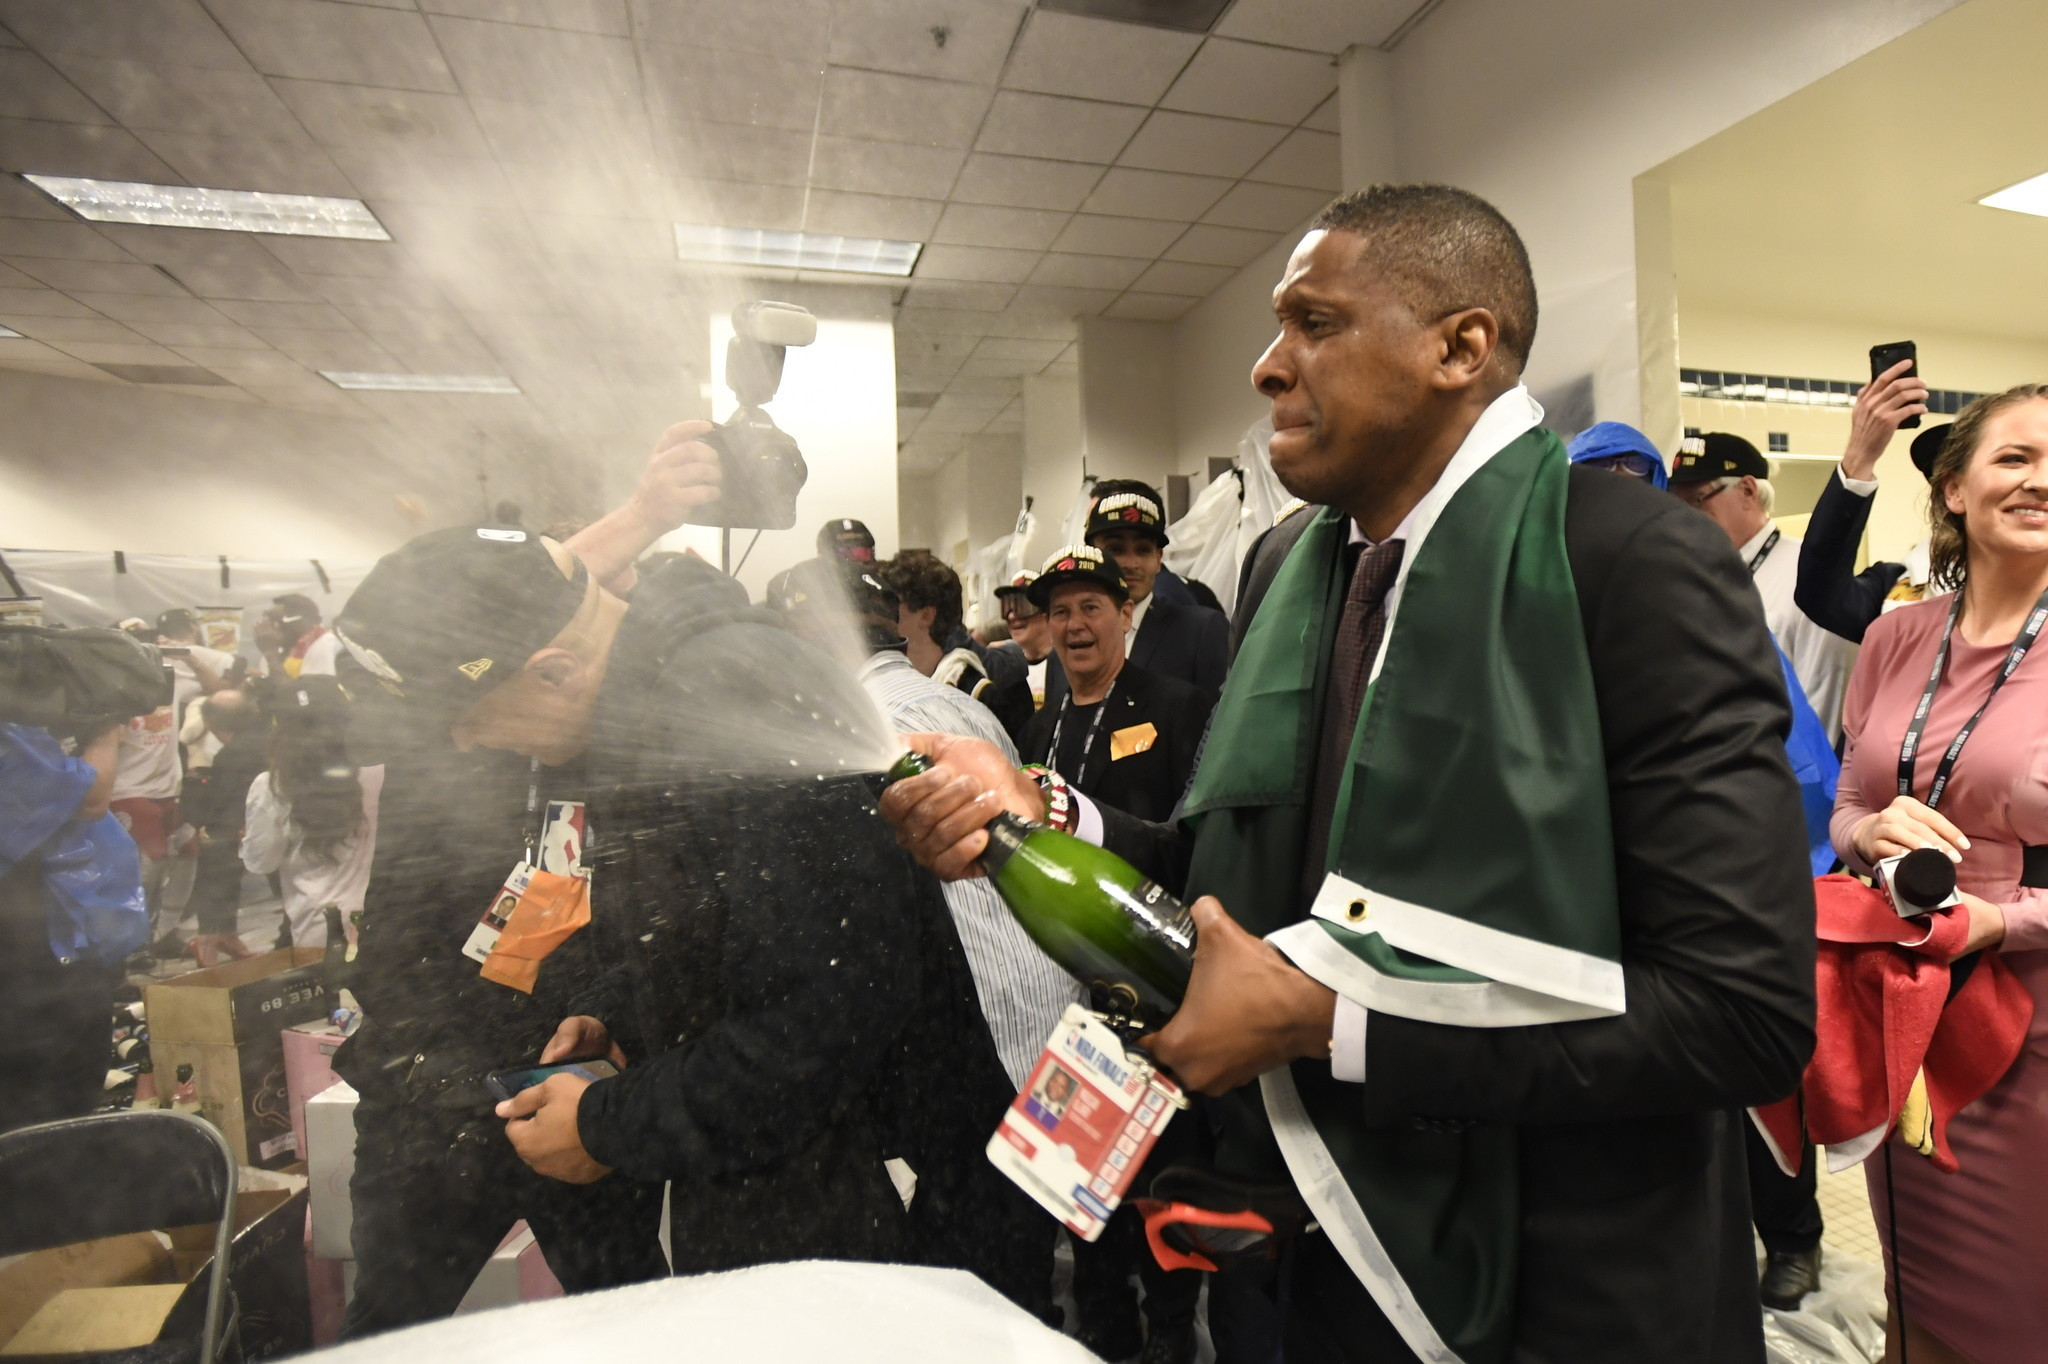 Toronto Raptors President Masai Ujiri celebrates after the team's 114-110 win over the Golden State